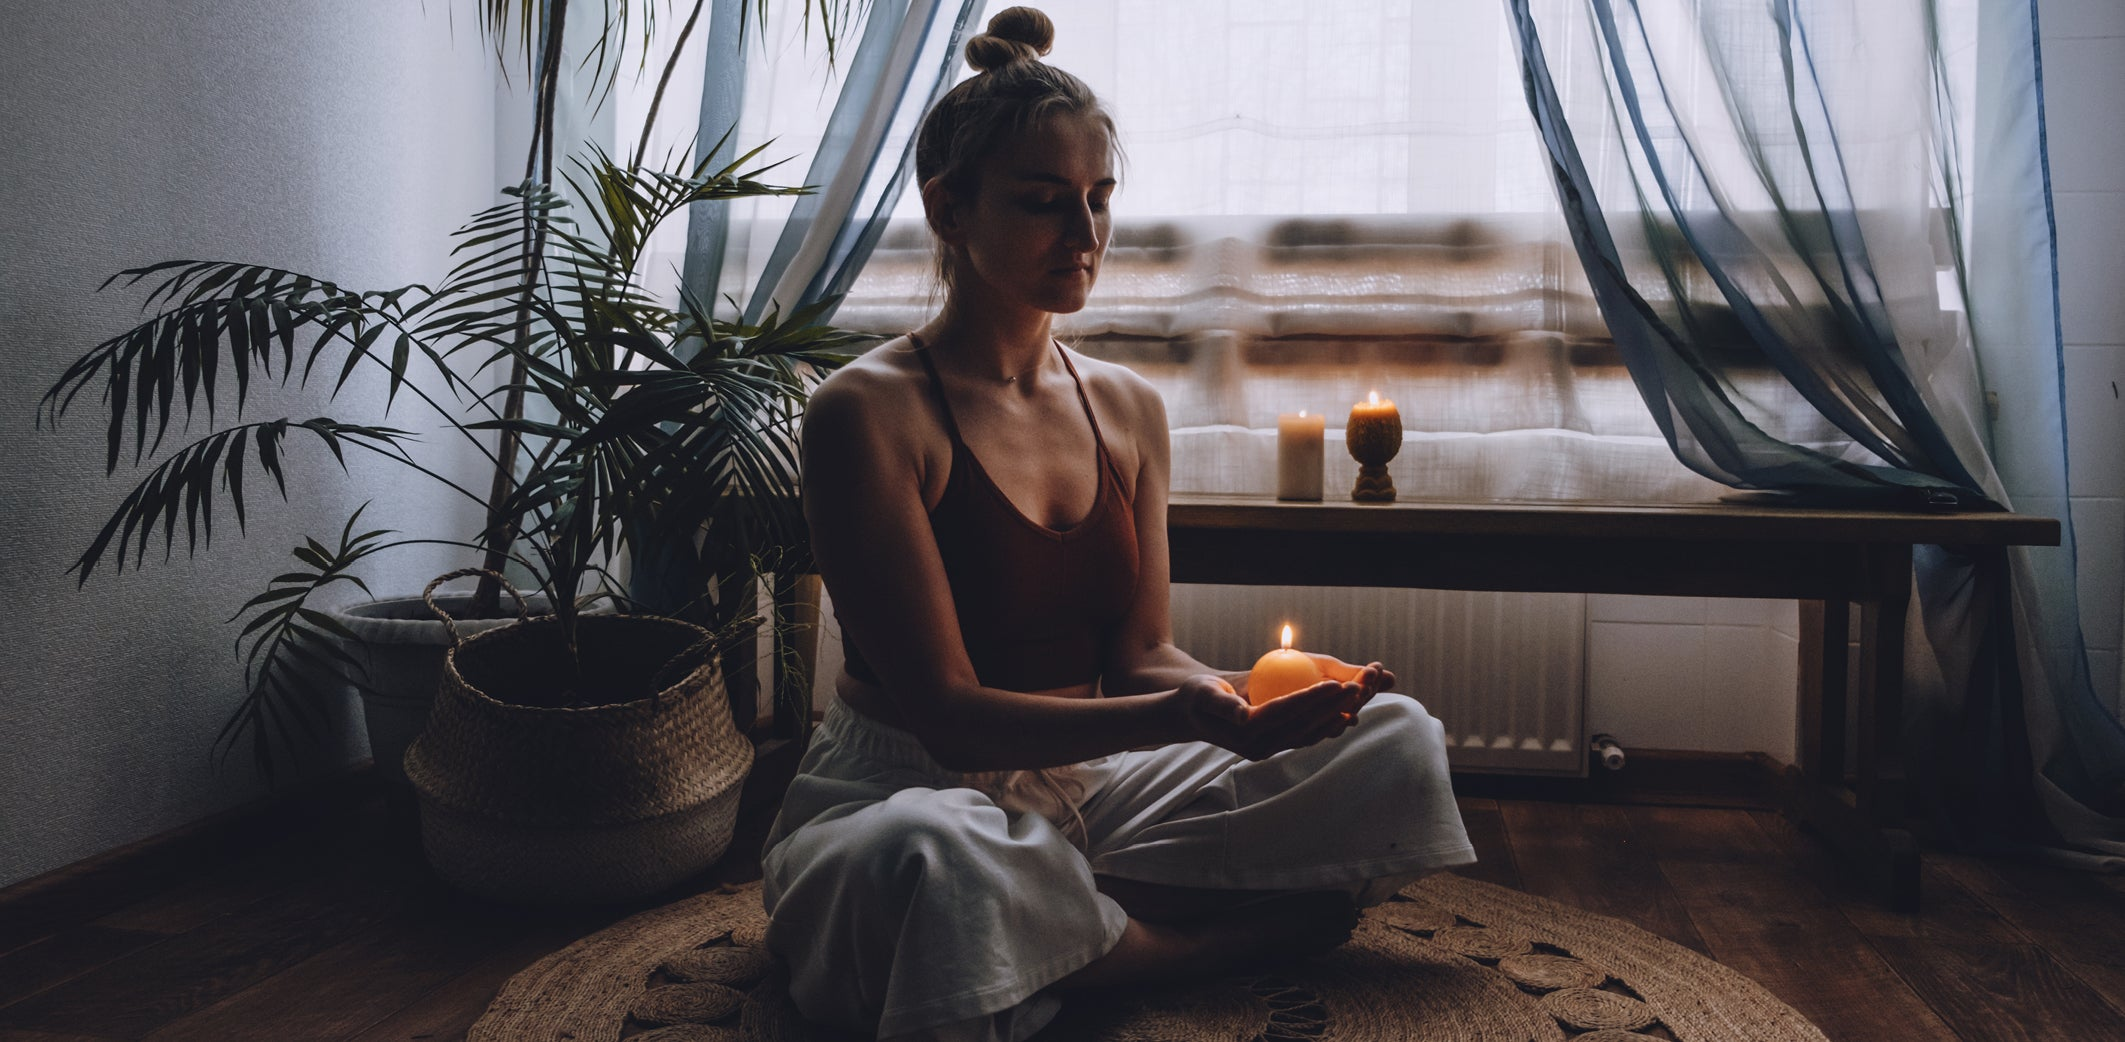 Easy Self Care - Daily Routines - women meditating candles